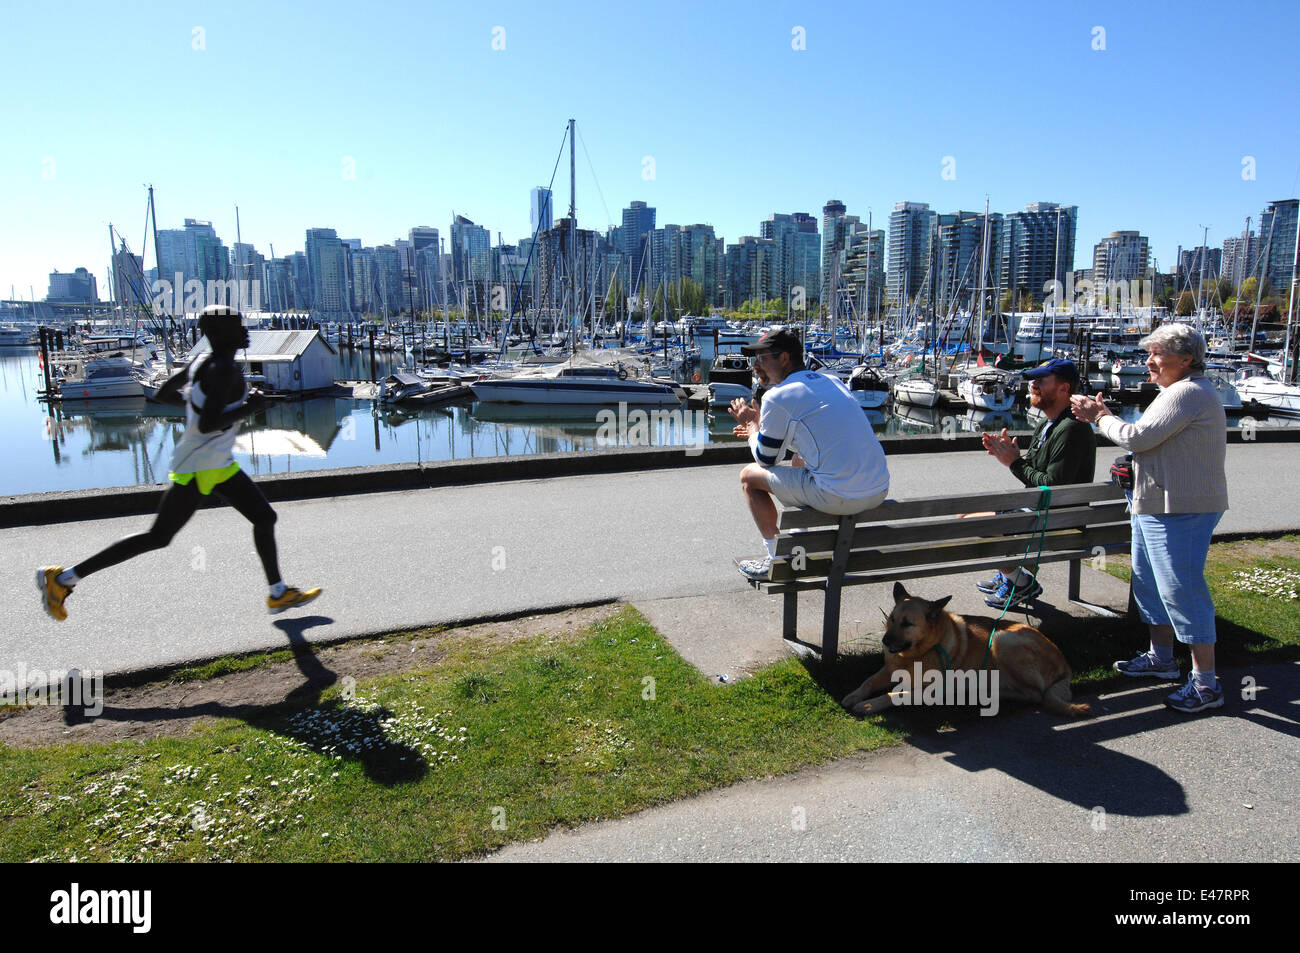 Vancouver, Canada. 4th July, 2014. People enjoy sunny day at Stanley Park, with Coal Harbour area in background, - Stock Image